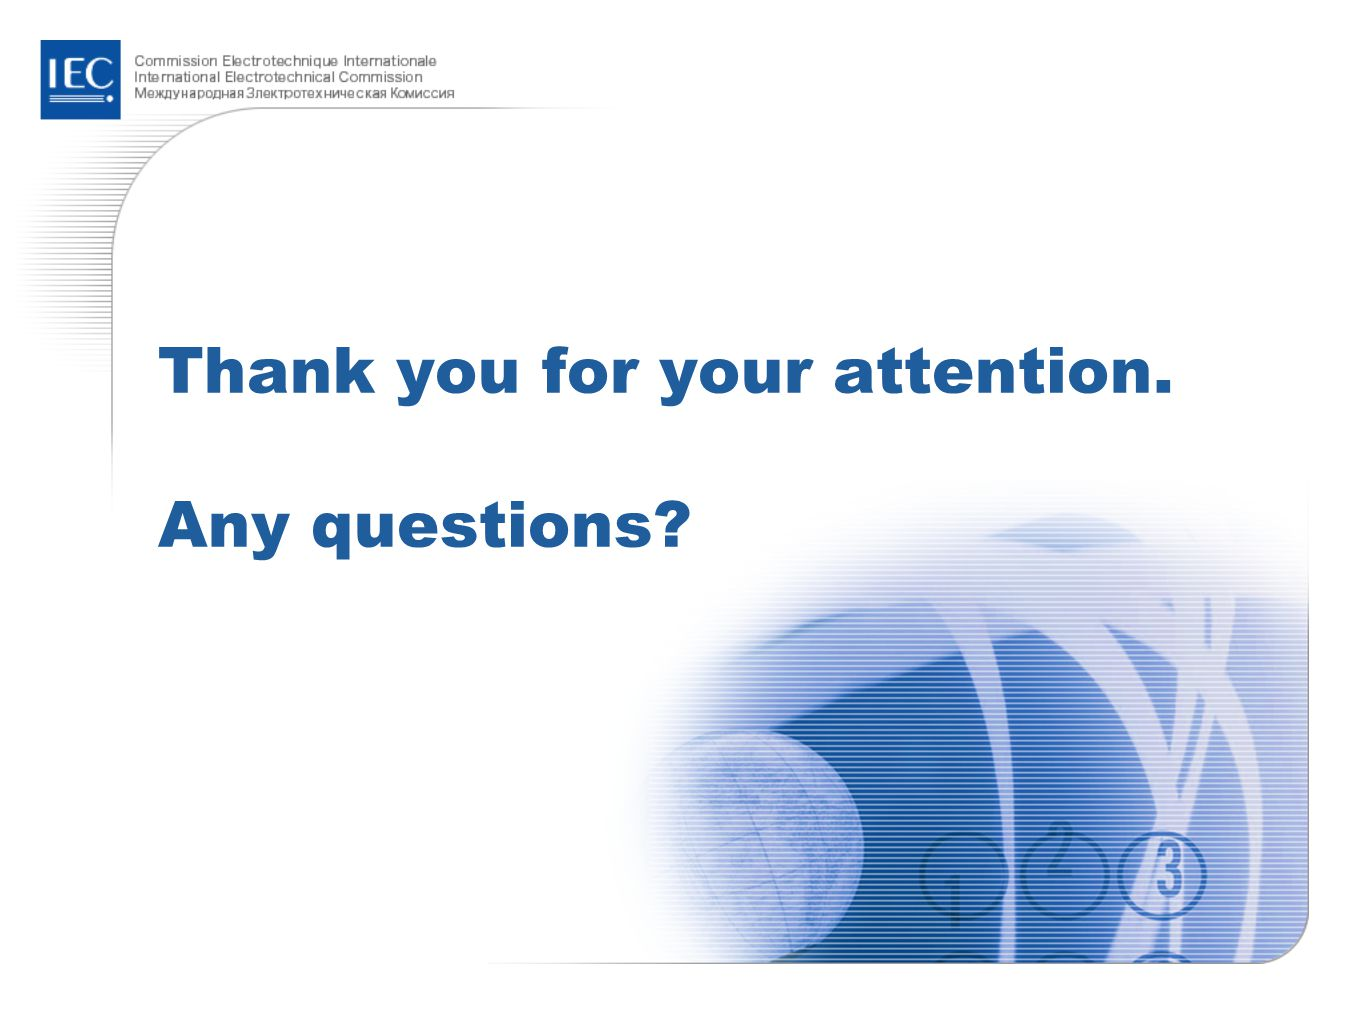 Thank you for your attention. Any questions